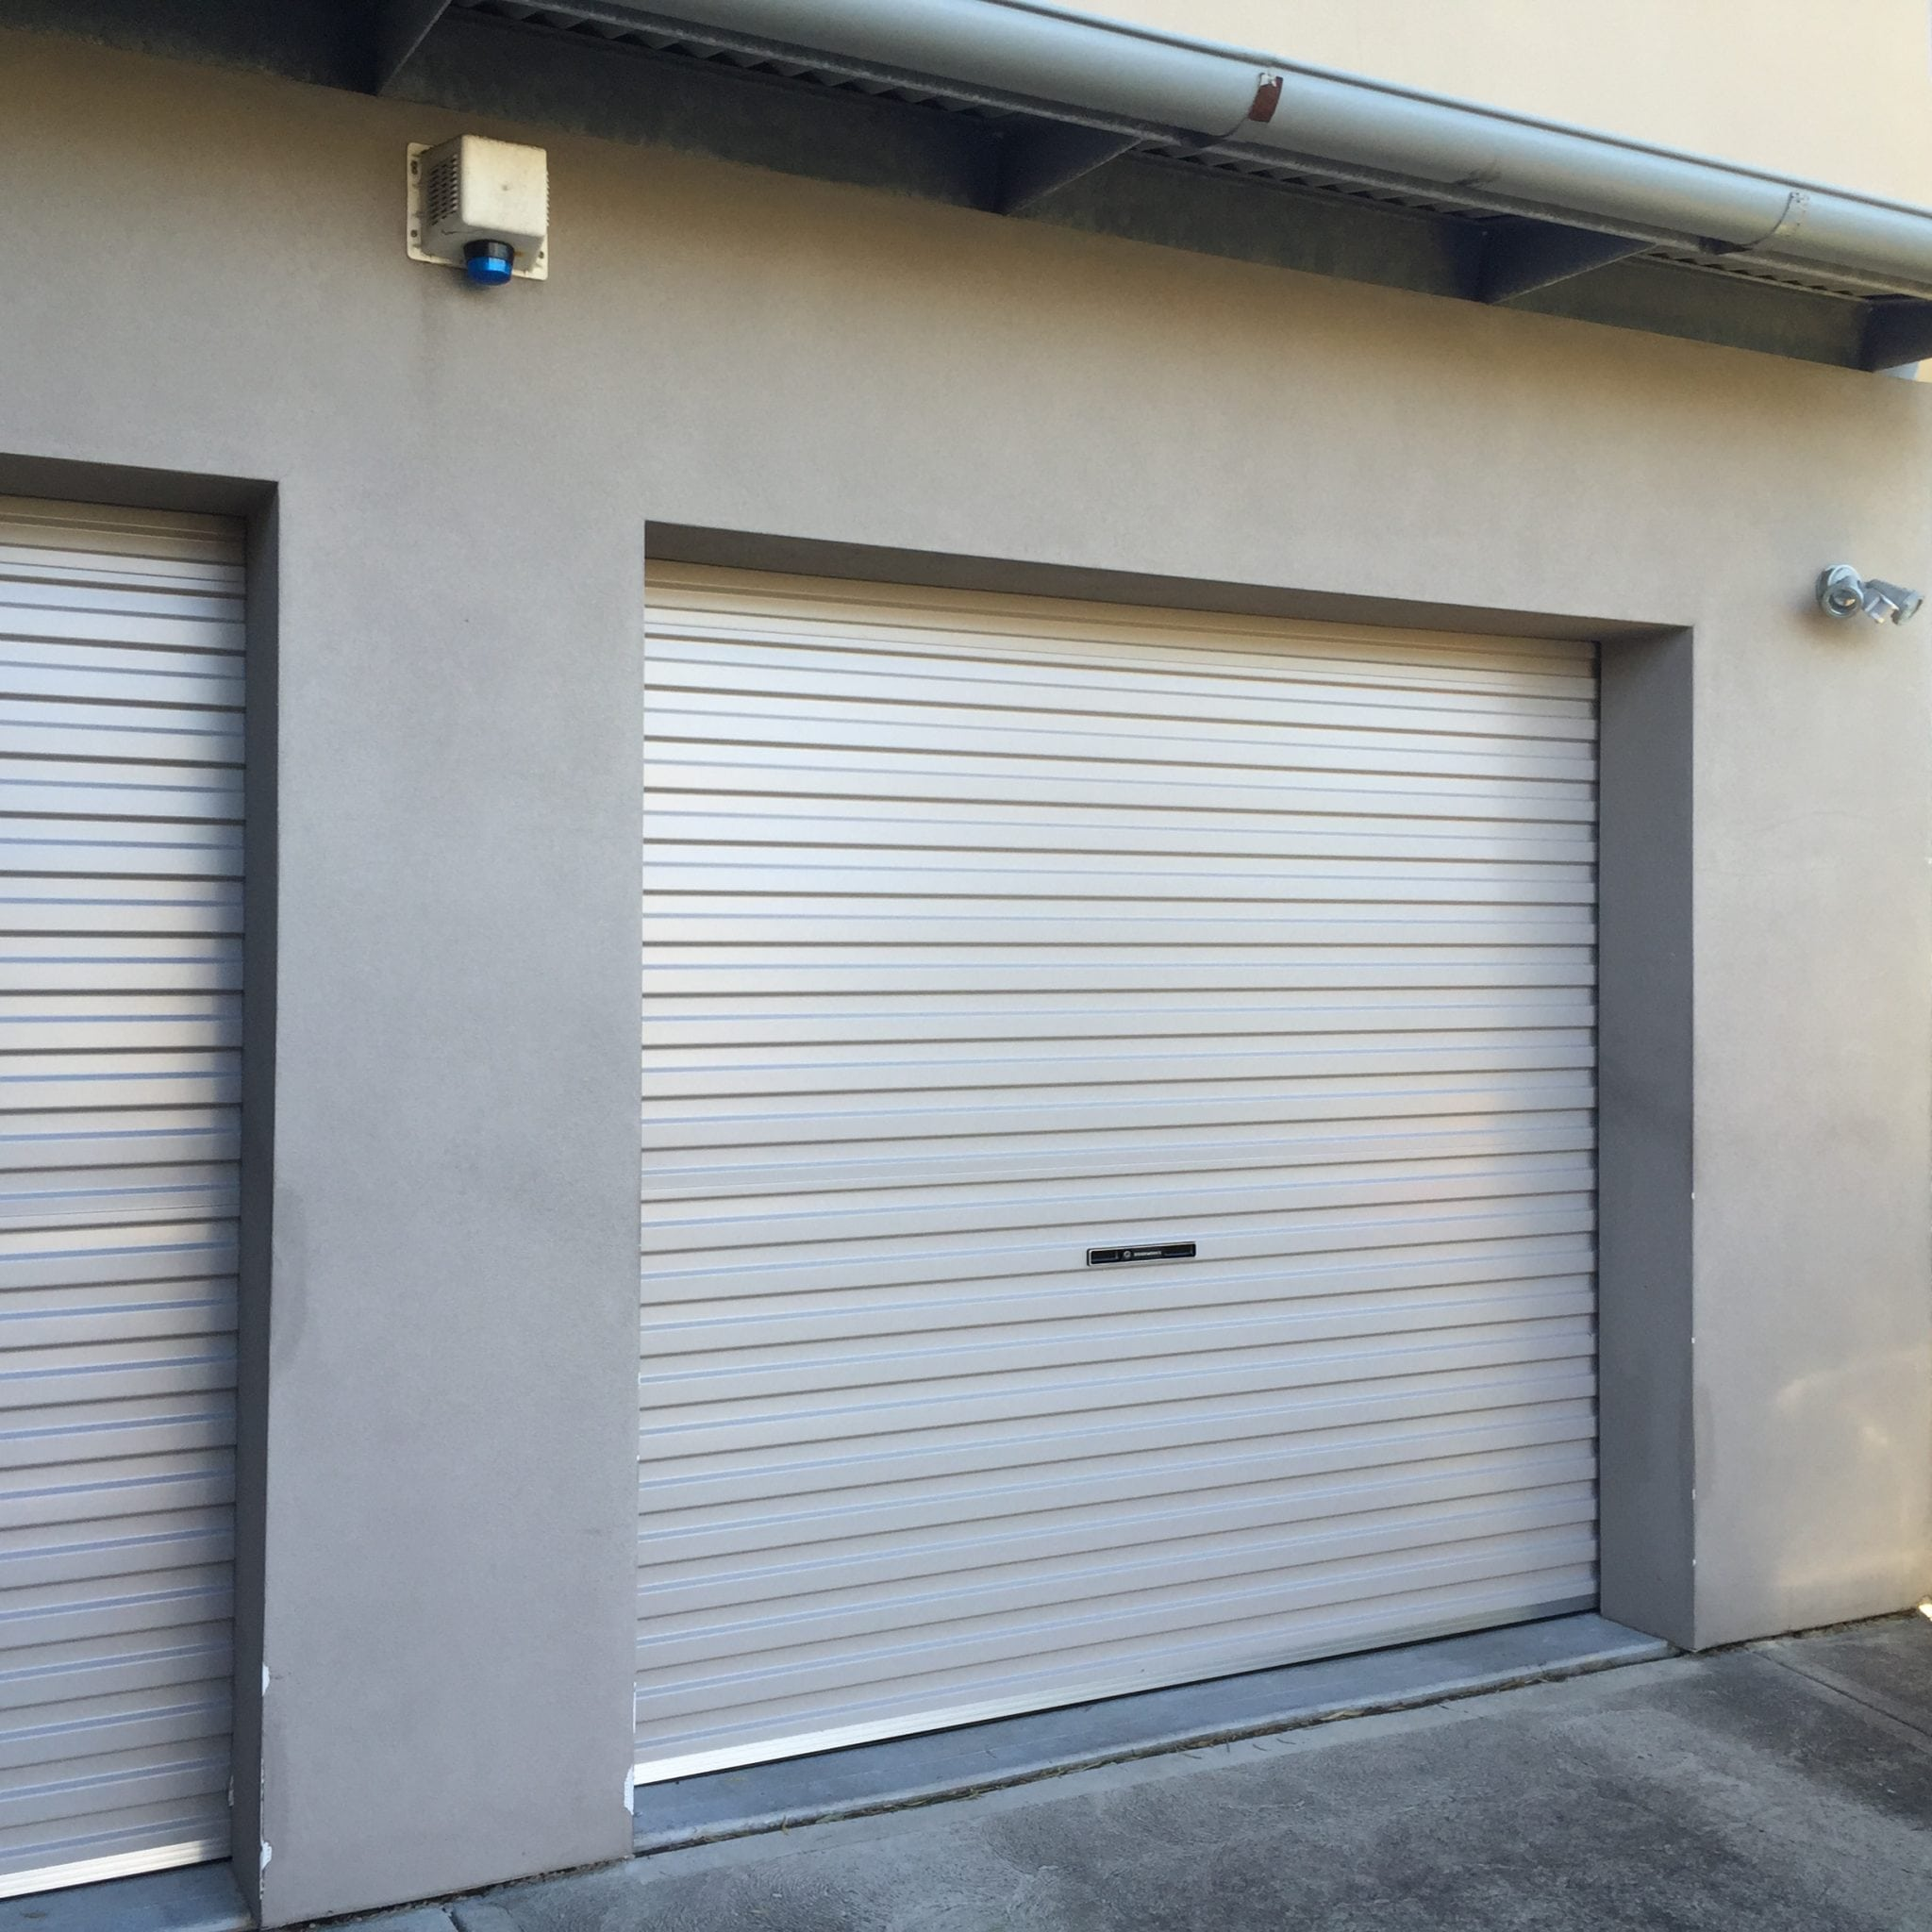 Panel lift doors, Garage Doors Newcastle, garage roller doors, Garage Door Opener